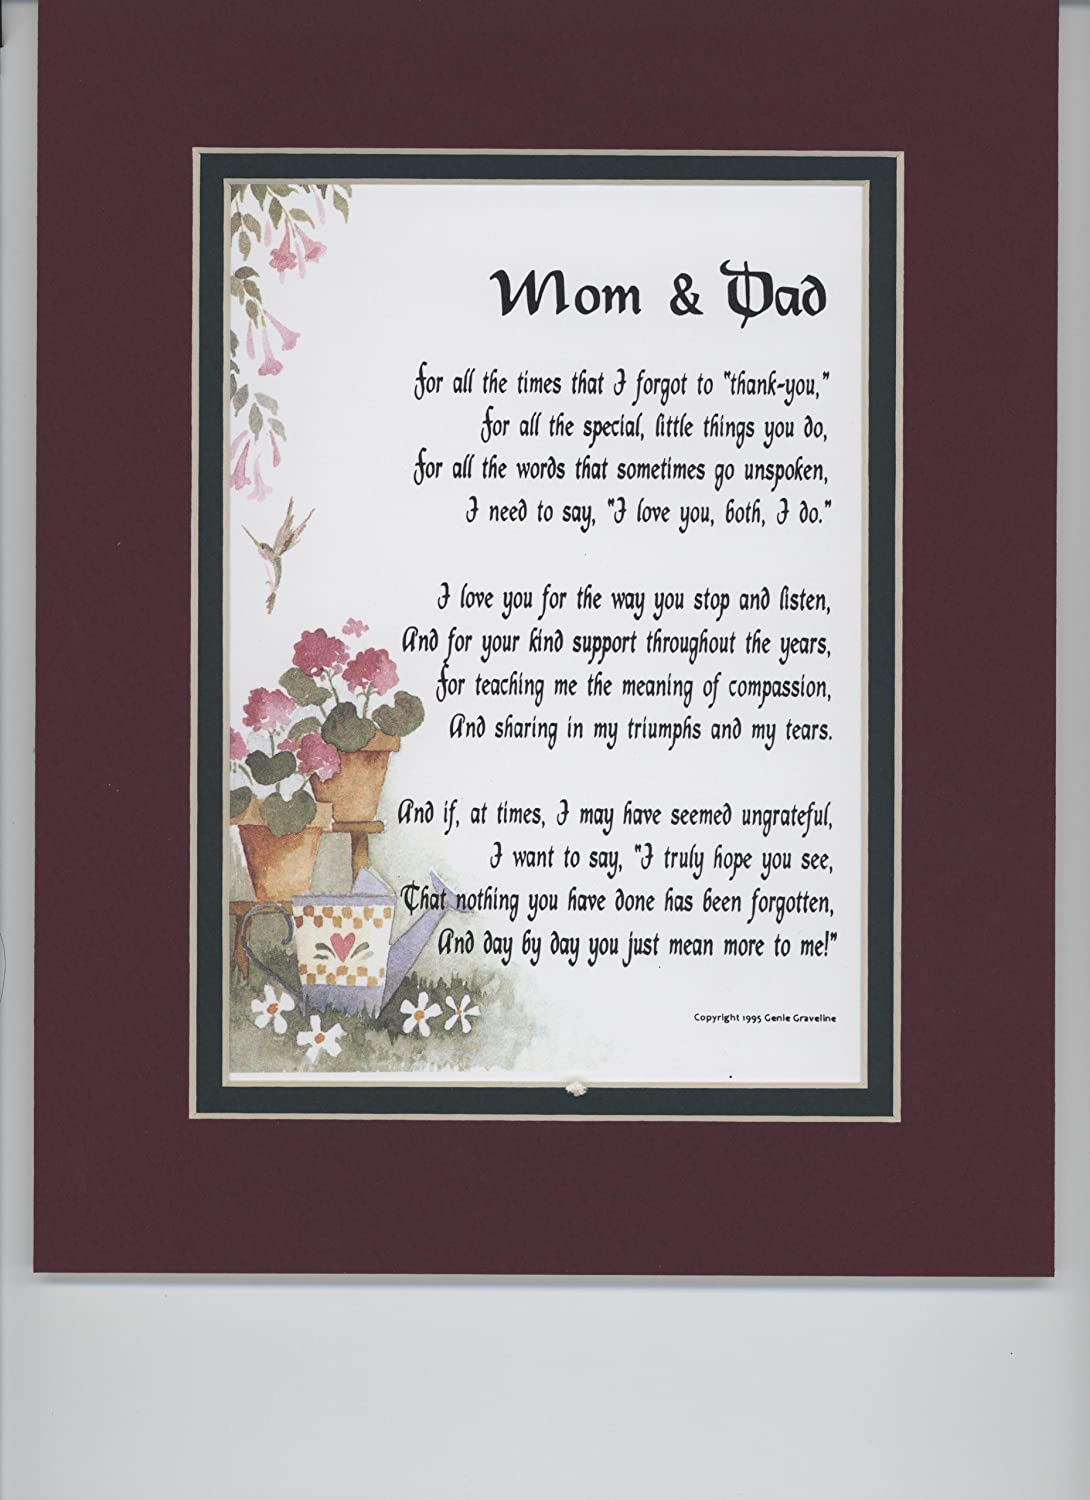 Wedding Anniversary Gift For Mom And Dad : Special 30th Wedding Anniversary Gifts for Mom and Dad